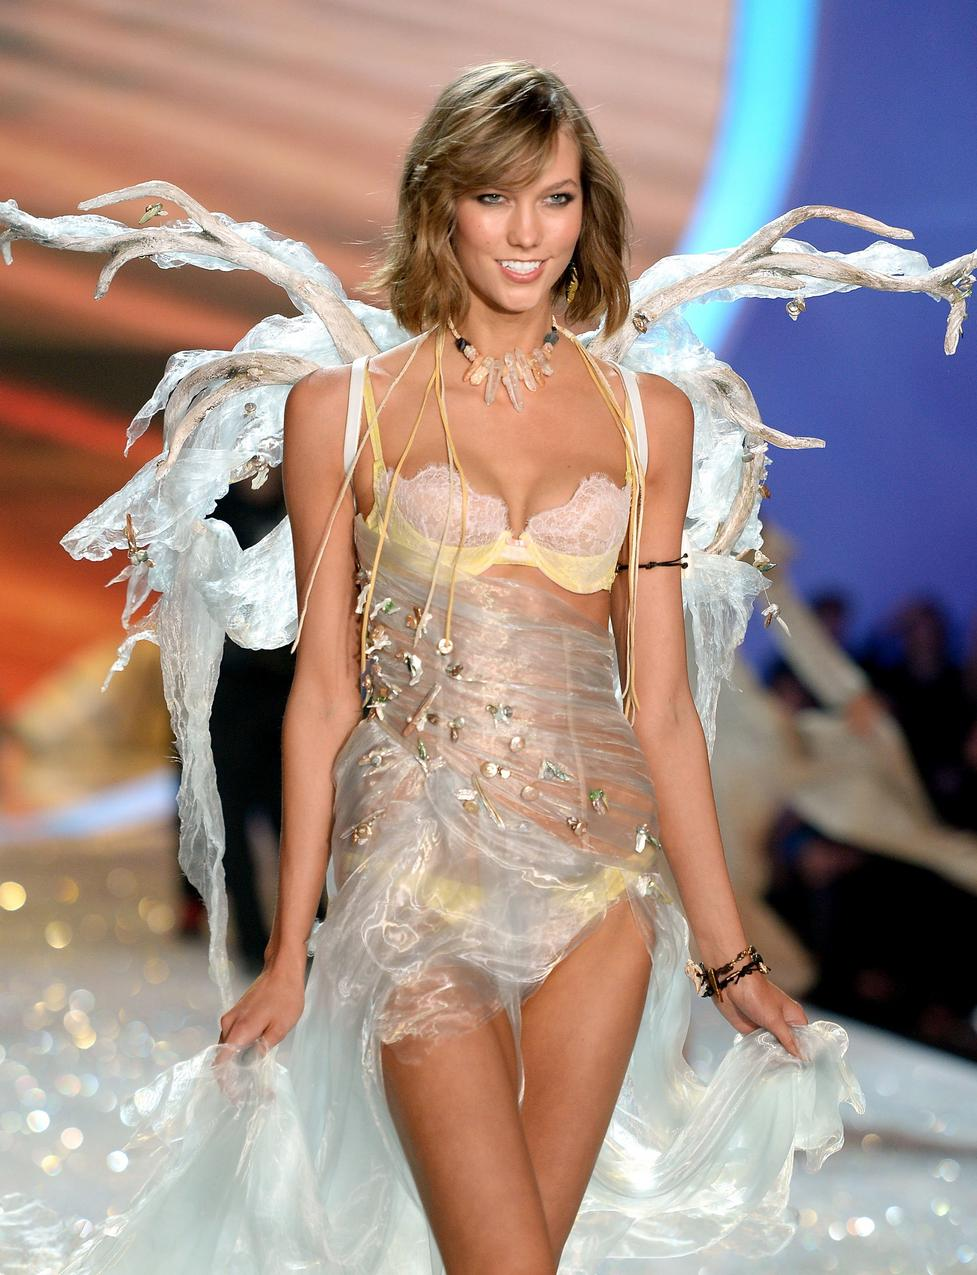 Karlie Kloss / Getty Images